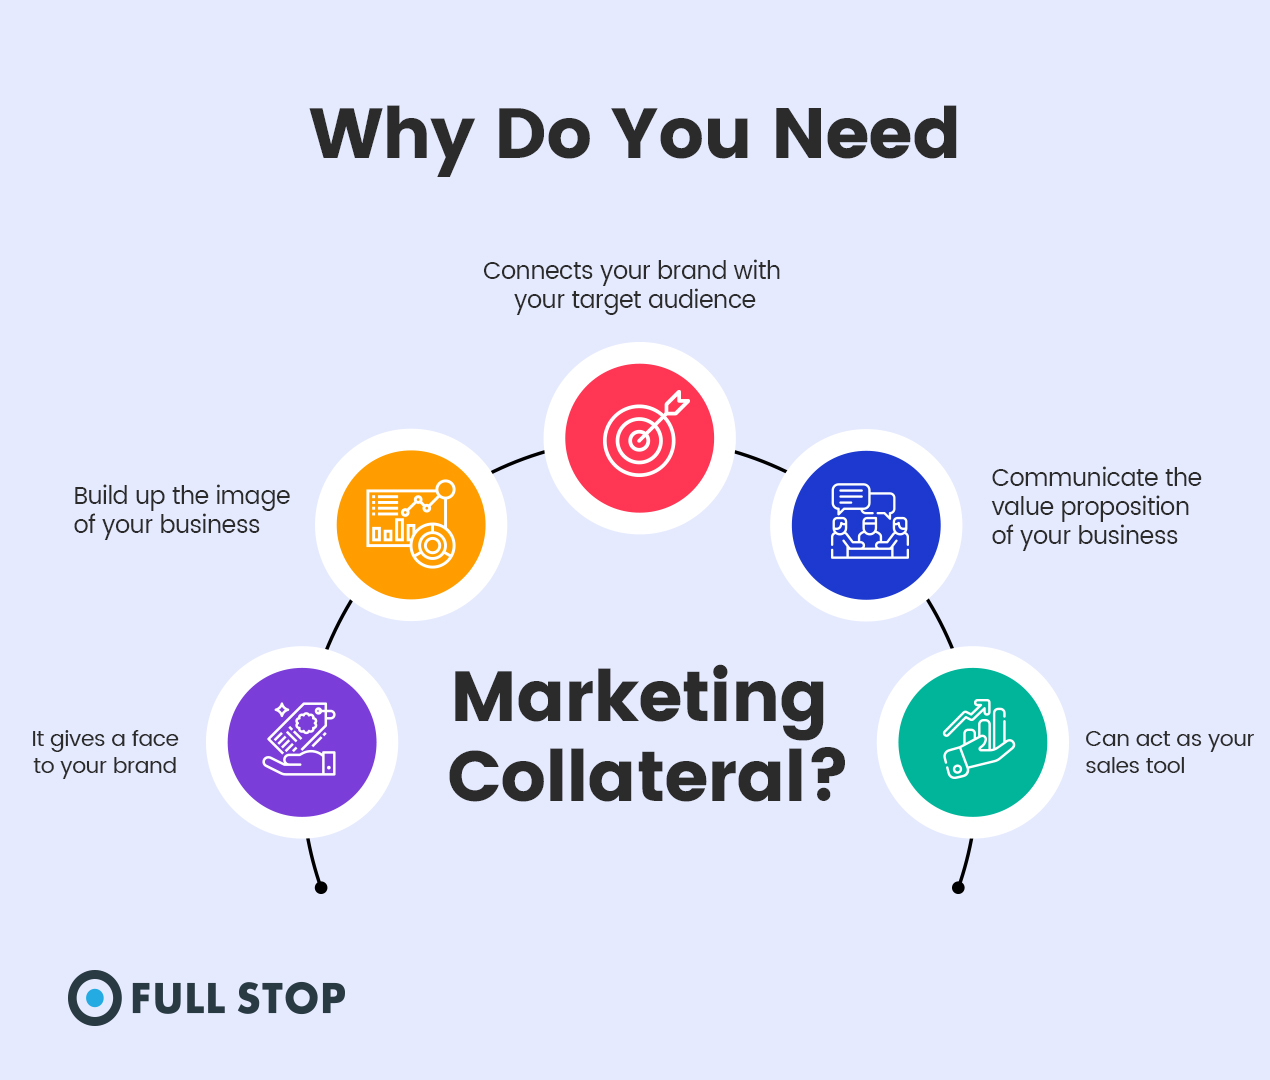 Why Do You Need Marketing Collateral